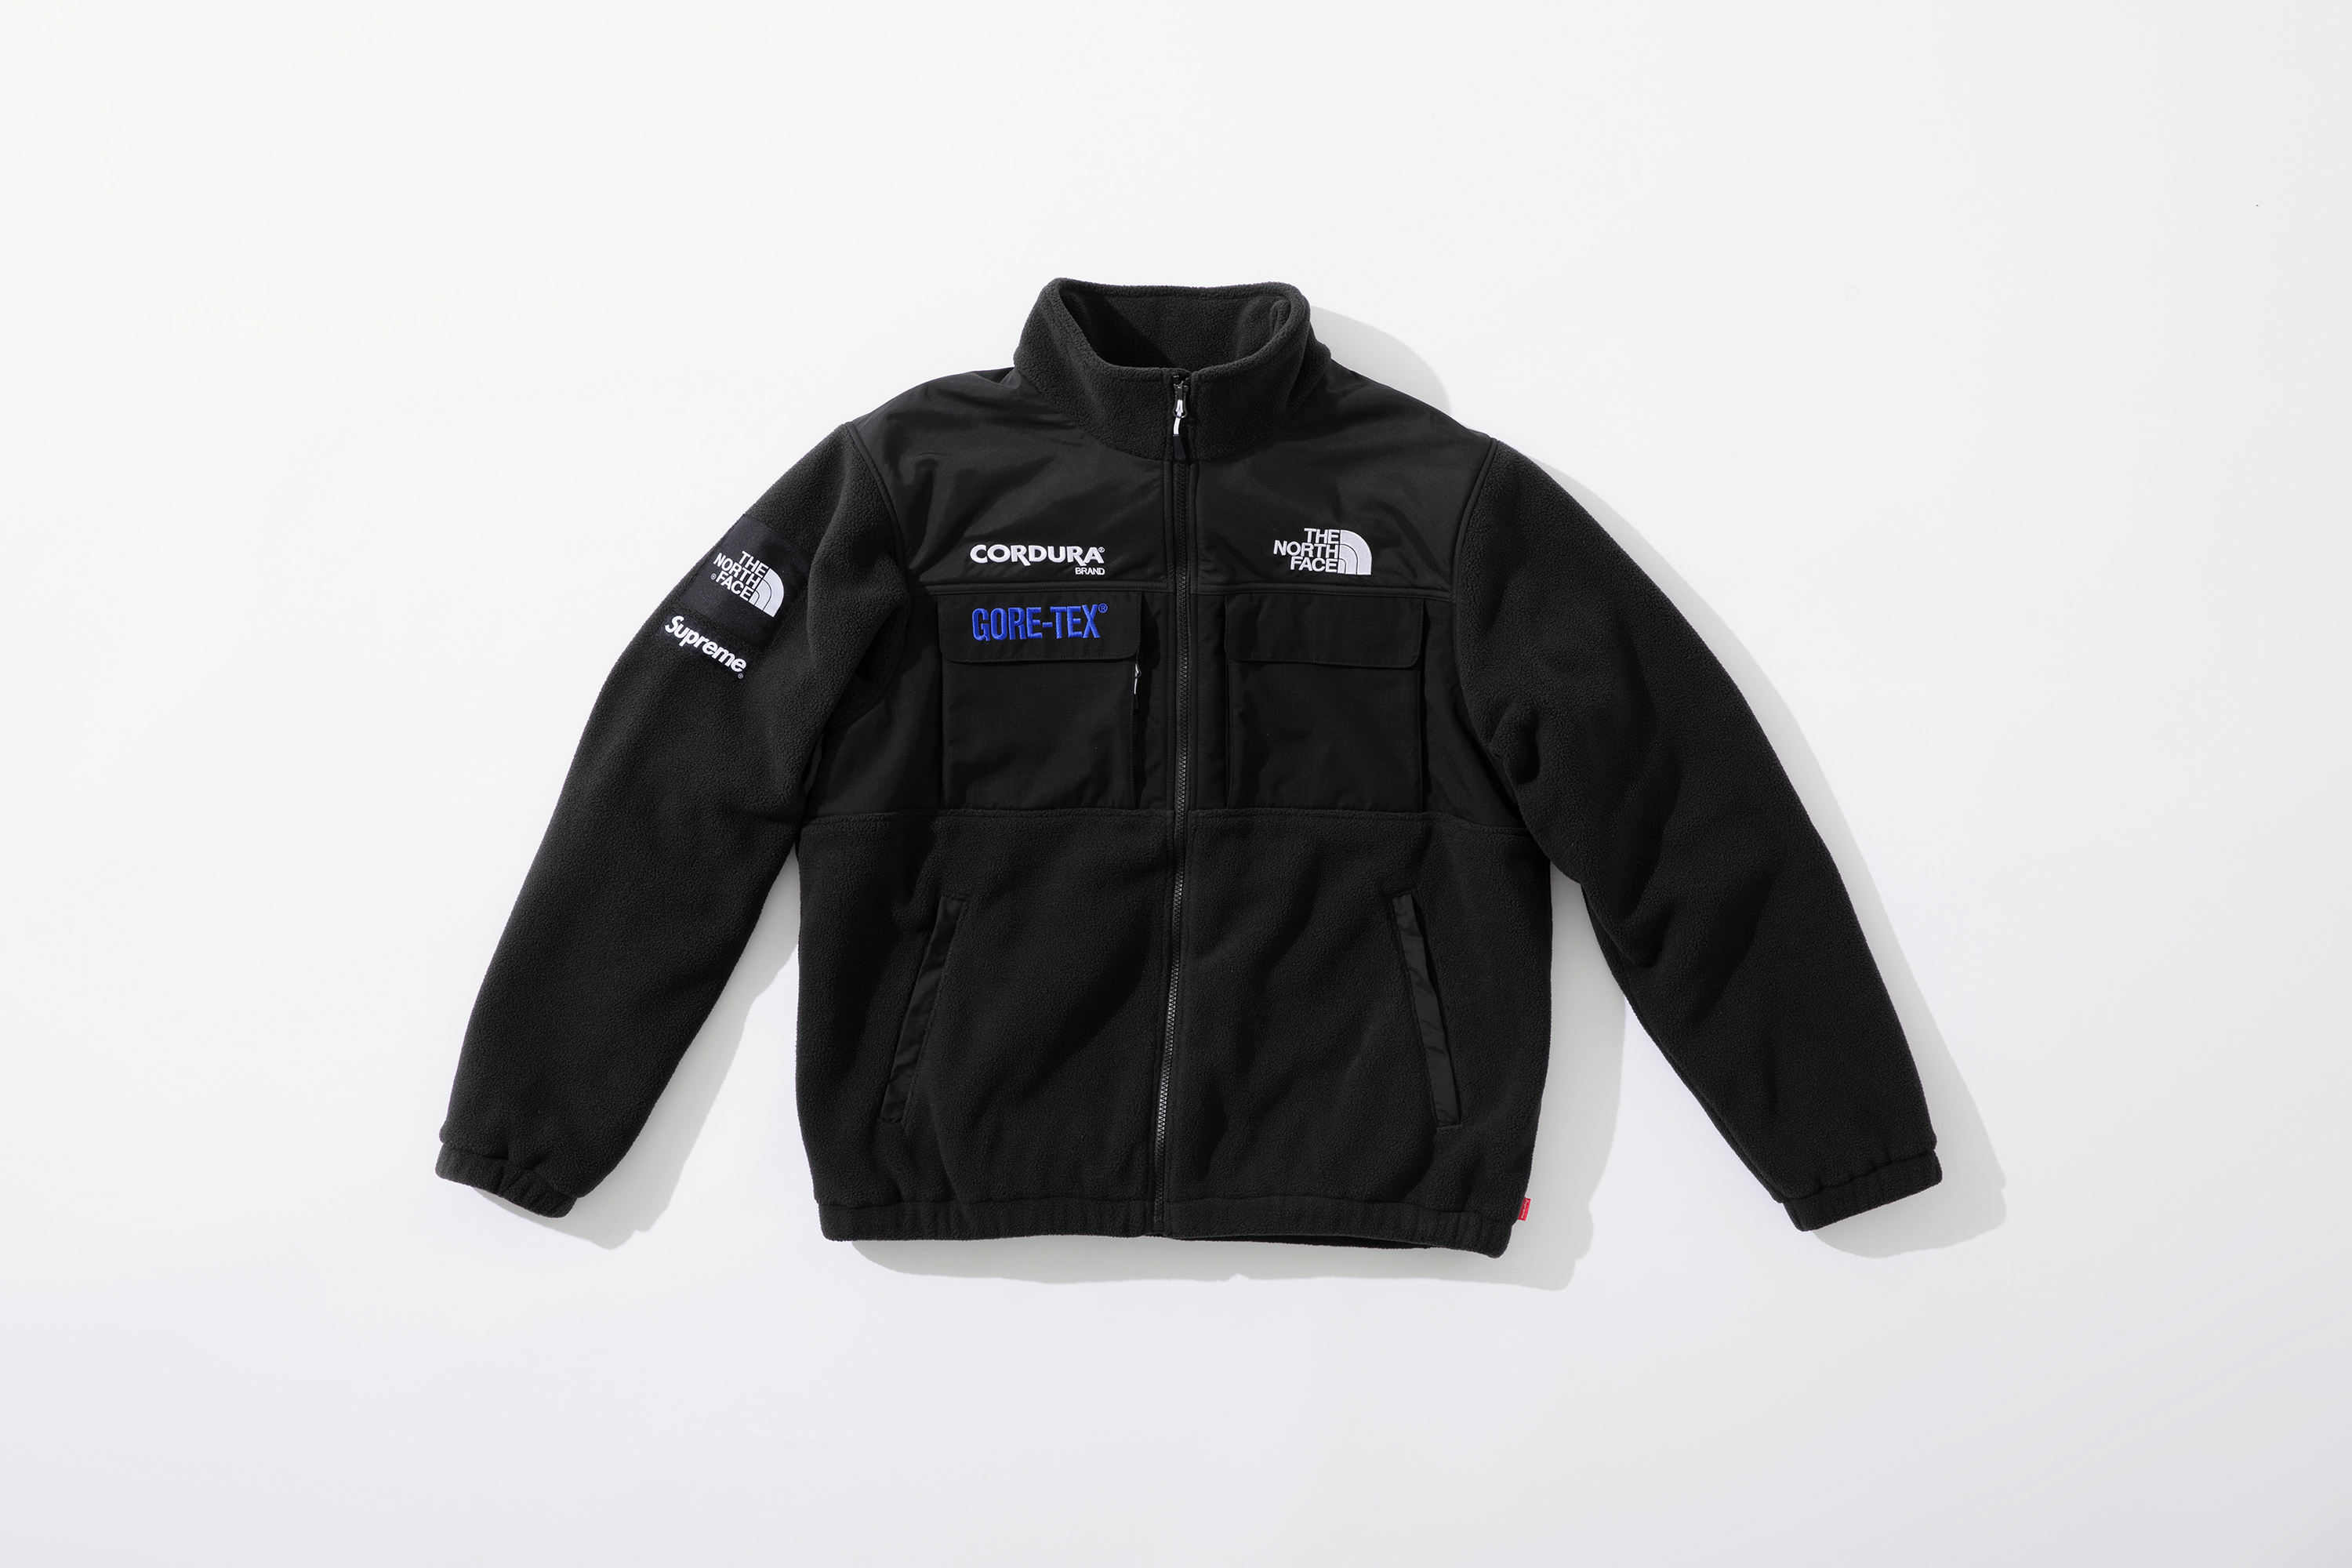 supreme-the-north-face-2018aw-2nd-delivery-release-20181201-week15-expedition-fleece-jacket